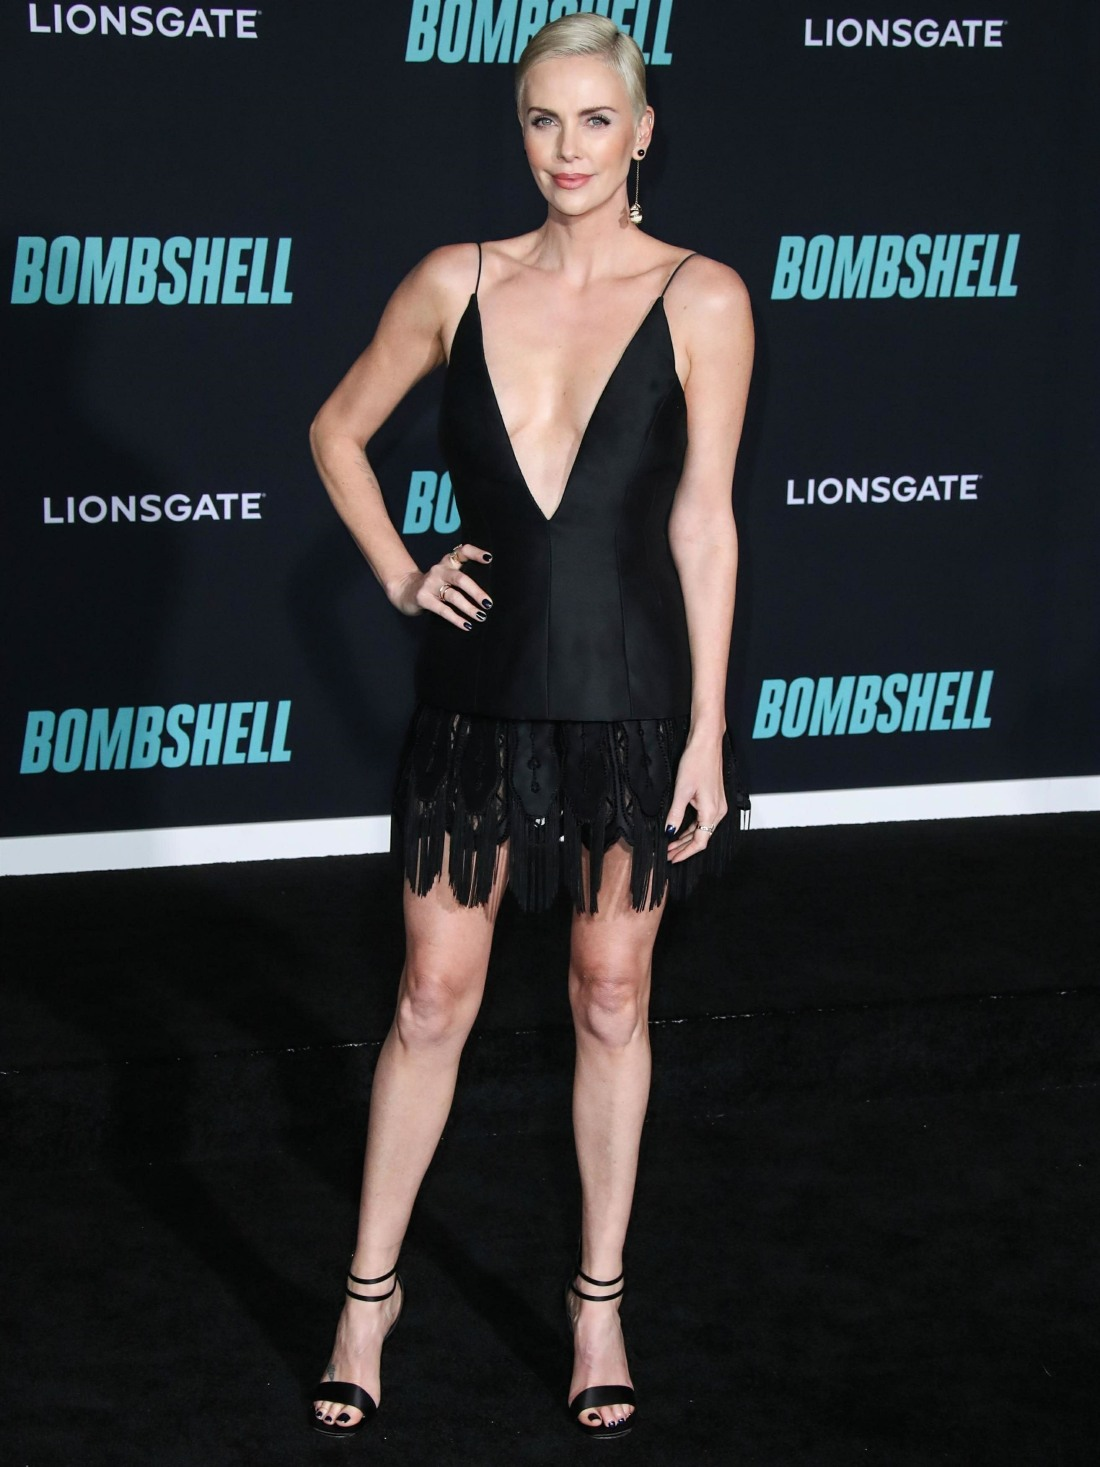 Los Angeles Special Screening Of Liongate's 'Bombshell'